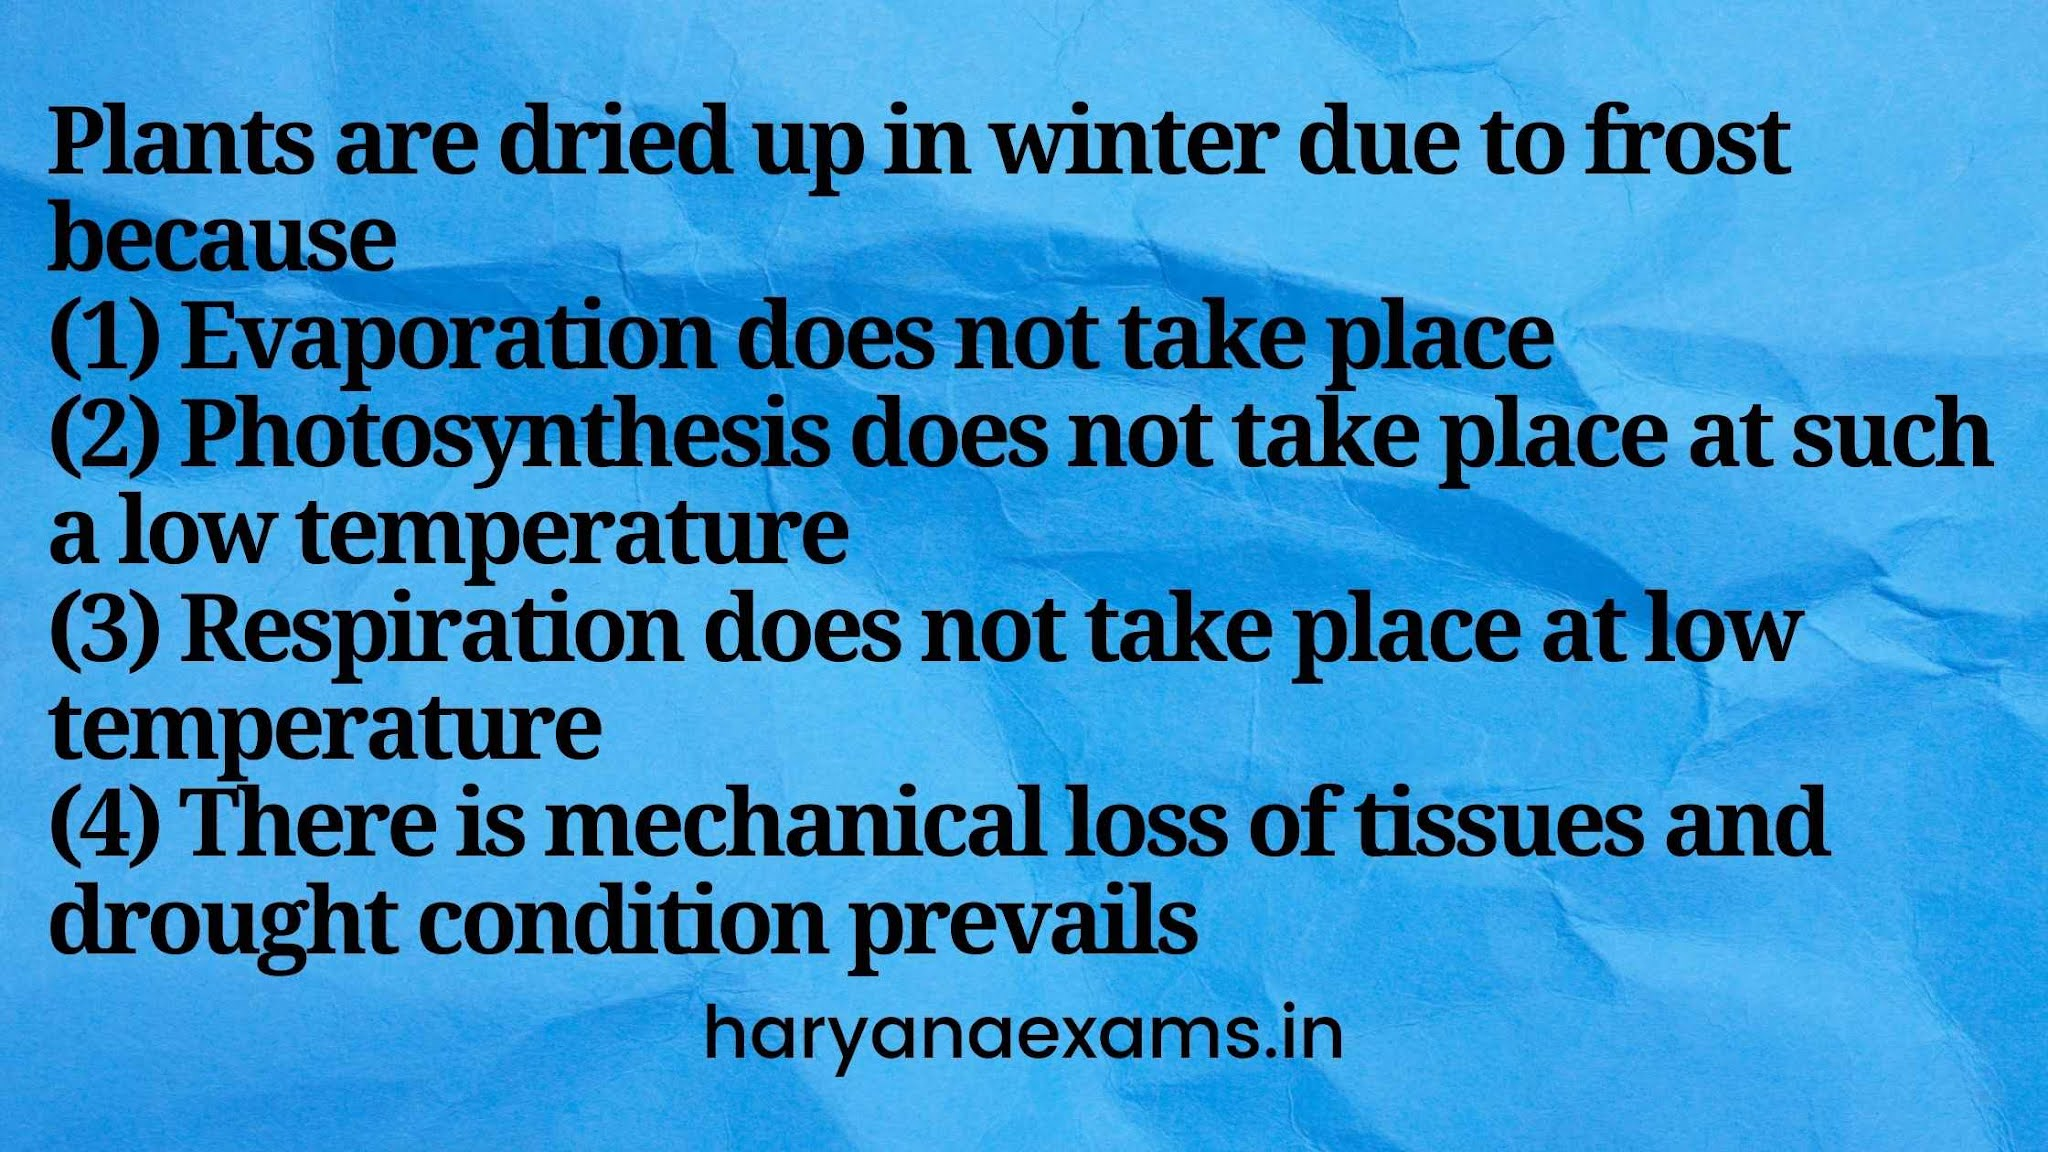 Plants are dried up in winter due to frost because   (1) Evaporation does not take place   (2) Photosynthesis does not take place at such a low temperature   (3) Respiration does not take place at low temperature   (4) There is mechanical loss of tissues and drought condition prevails